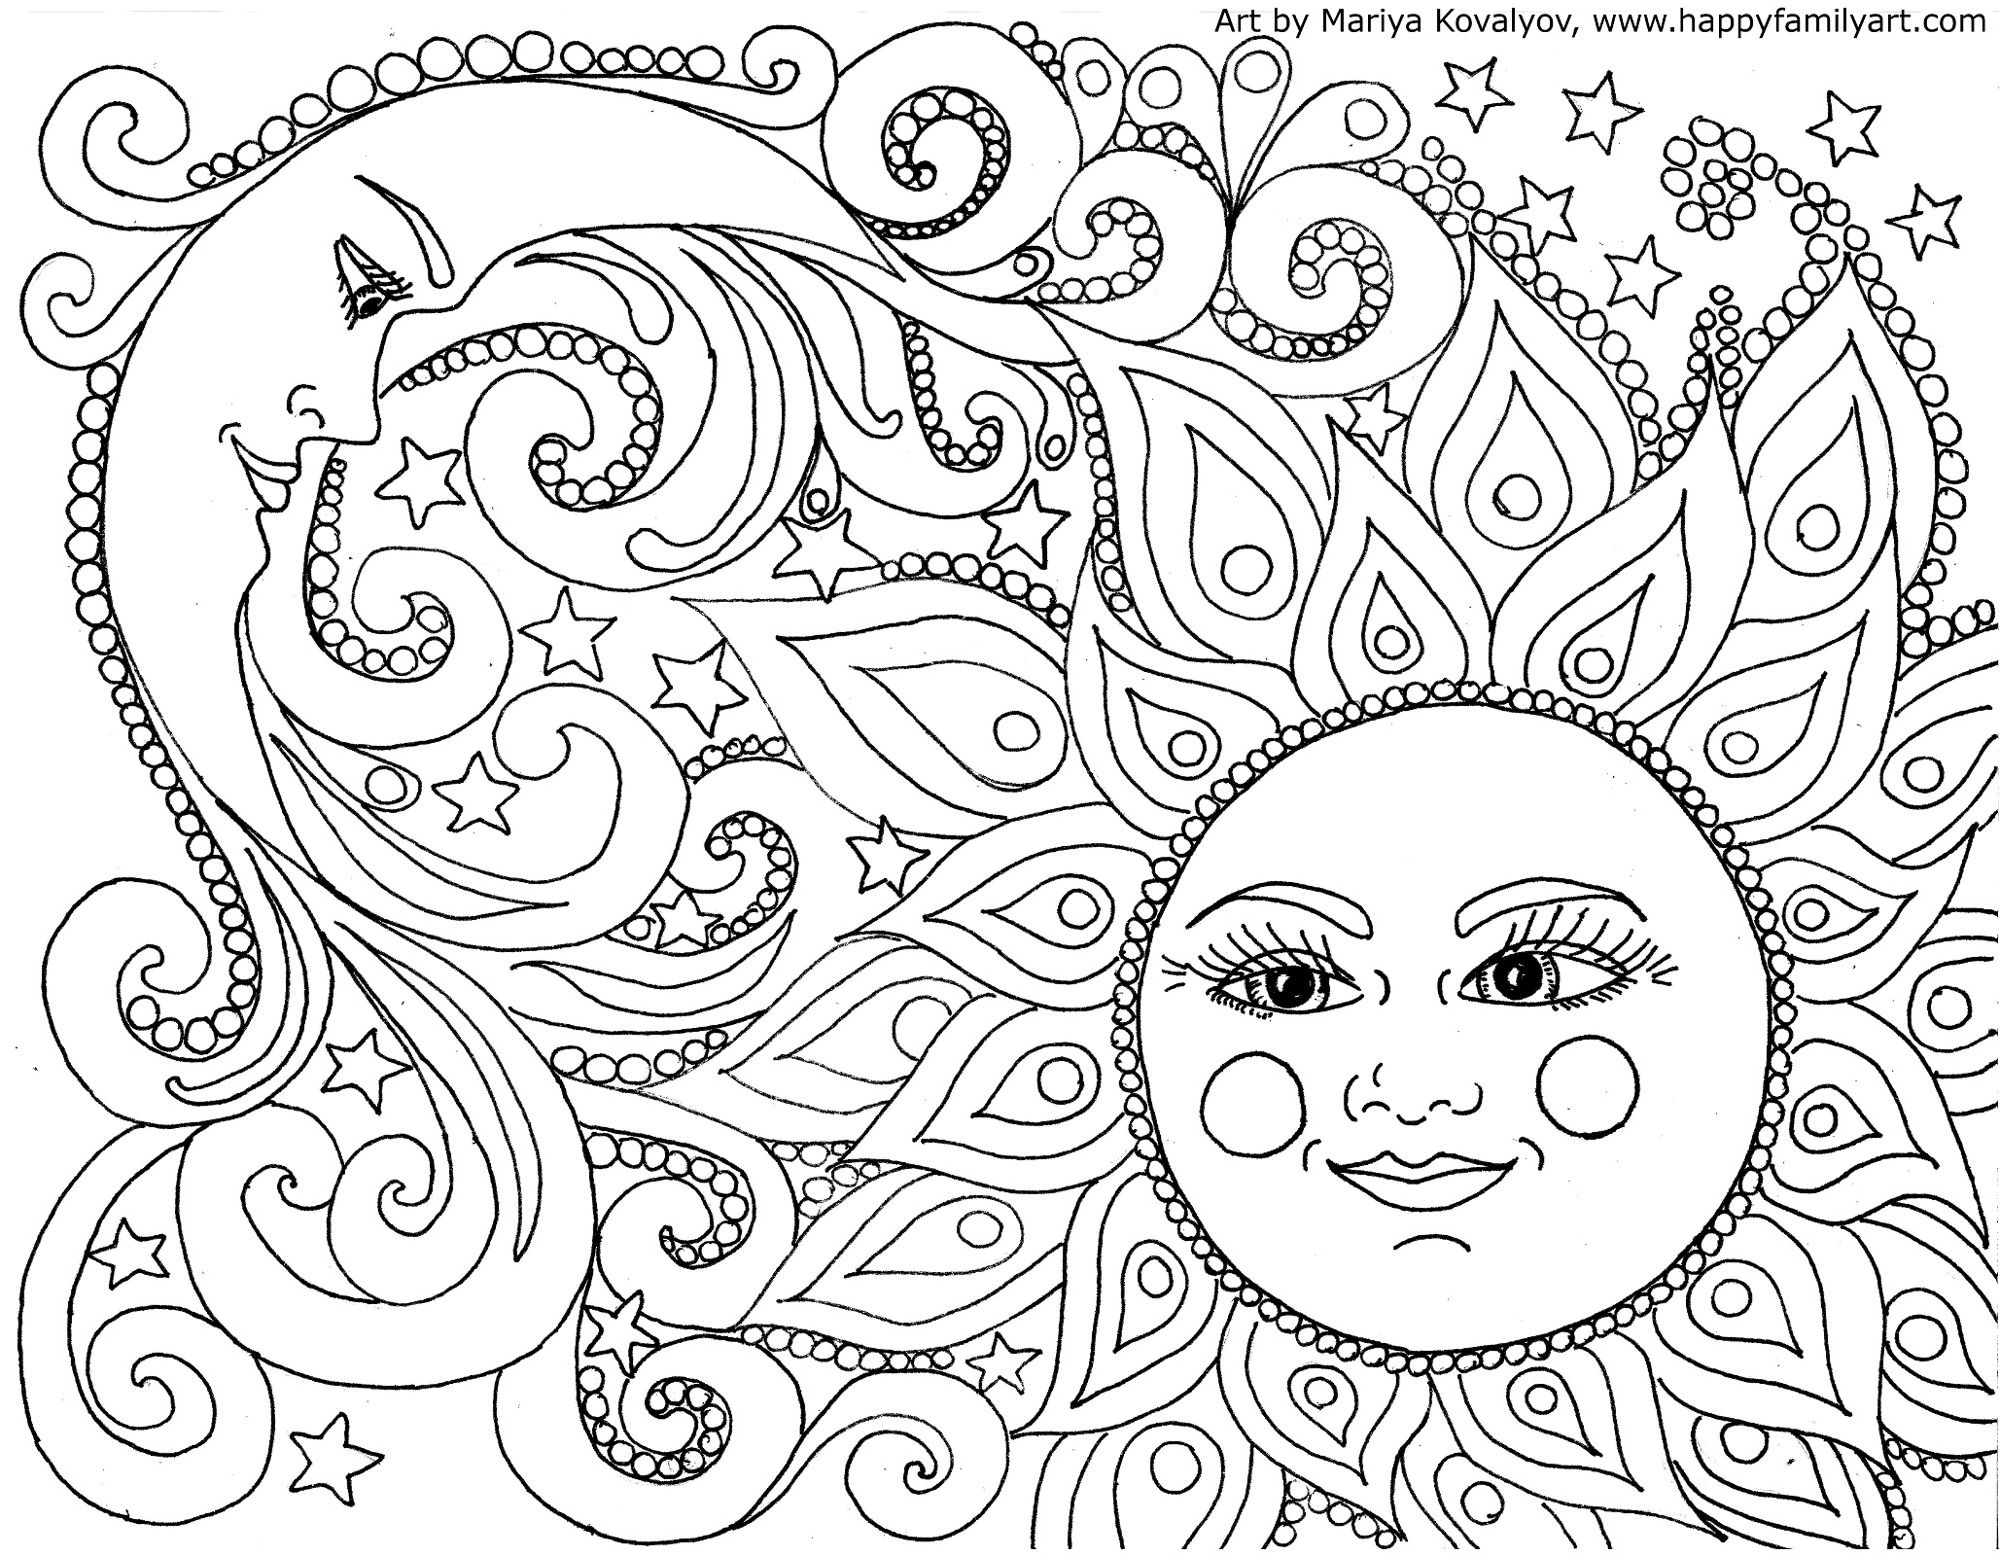 Online coloring for adults free - I Made Many Great Fun And Original Coloring Pages Color Your Heart Out Printable Adult Coloring Pagescoloring Booksfree